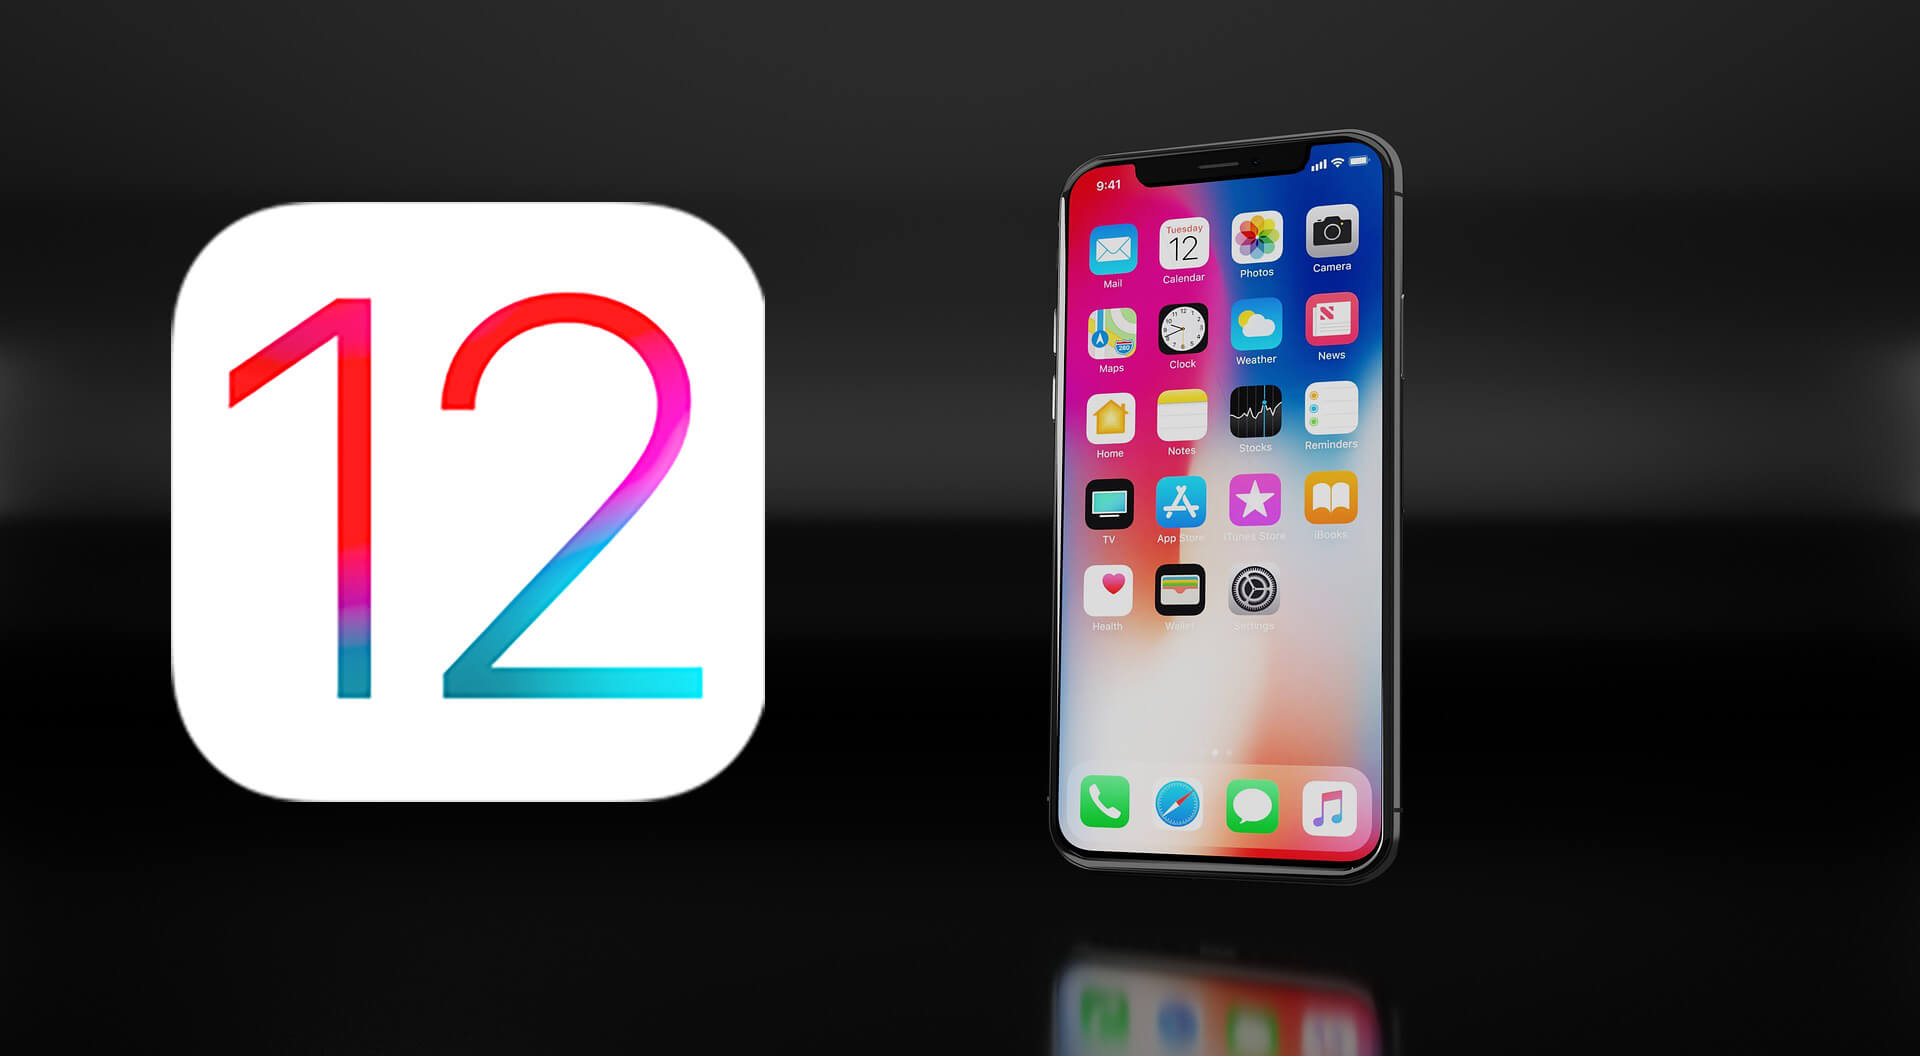 Pros and Cons of iOS 12